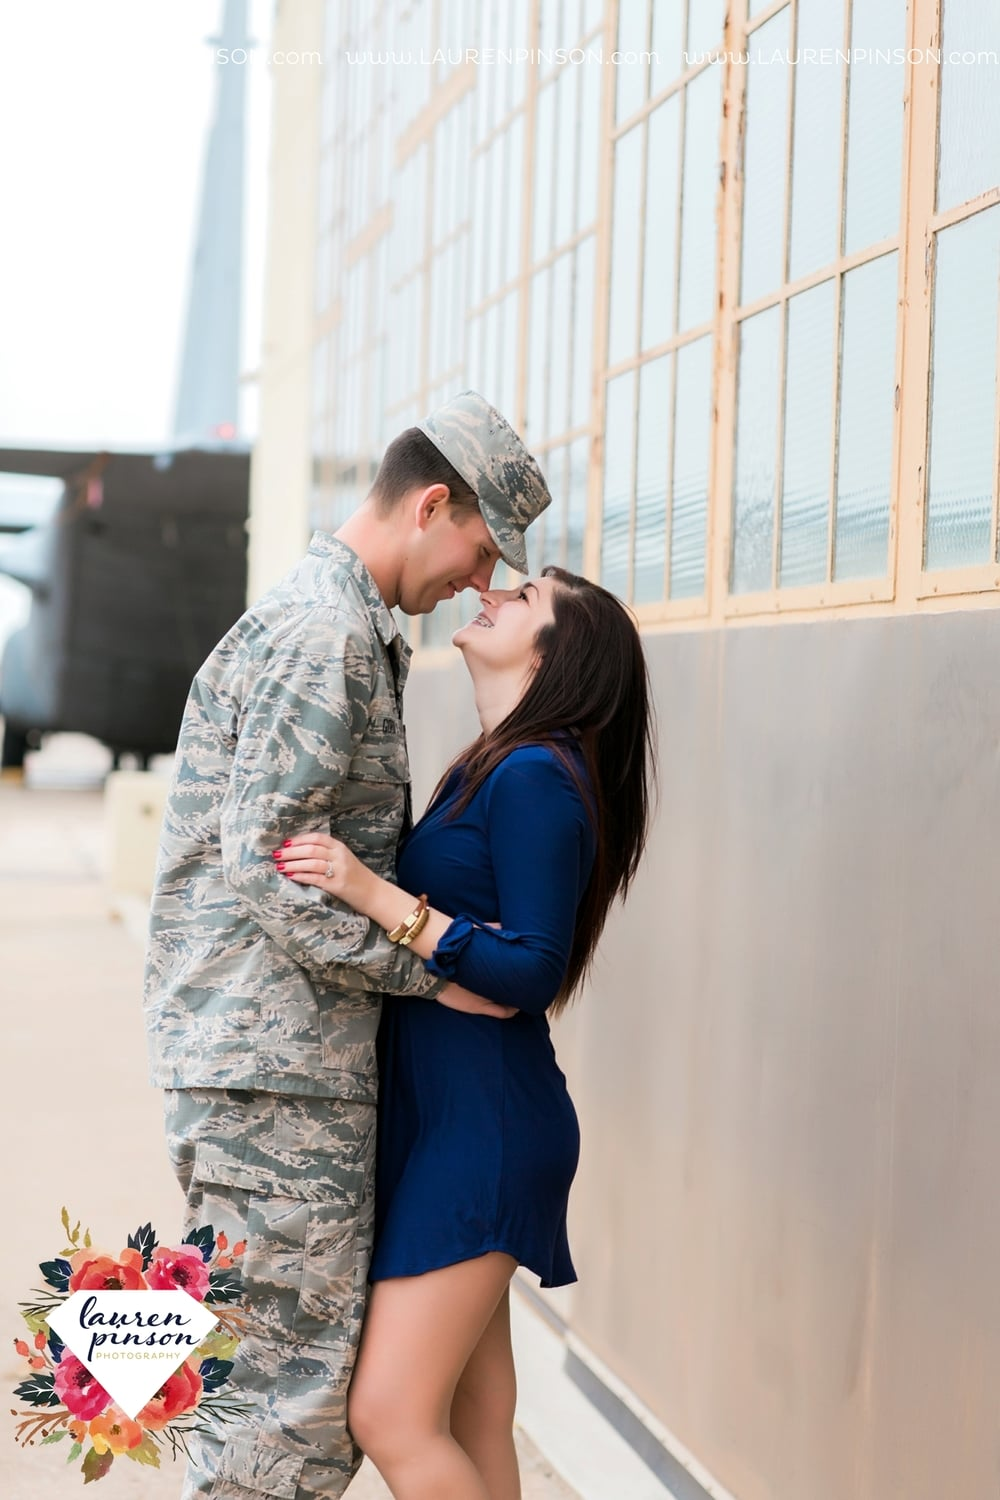 sheppard-afb-wichita-falls-engagement-session-airmen-in-uniform-abu-airplanes-bride-engagement-ring-texas-air-force-base_2005.jpg